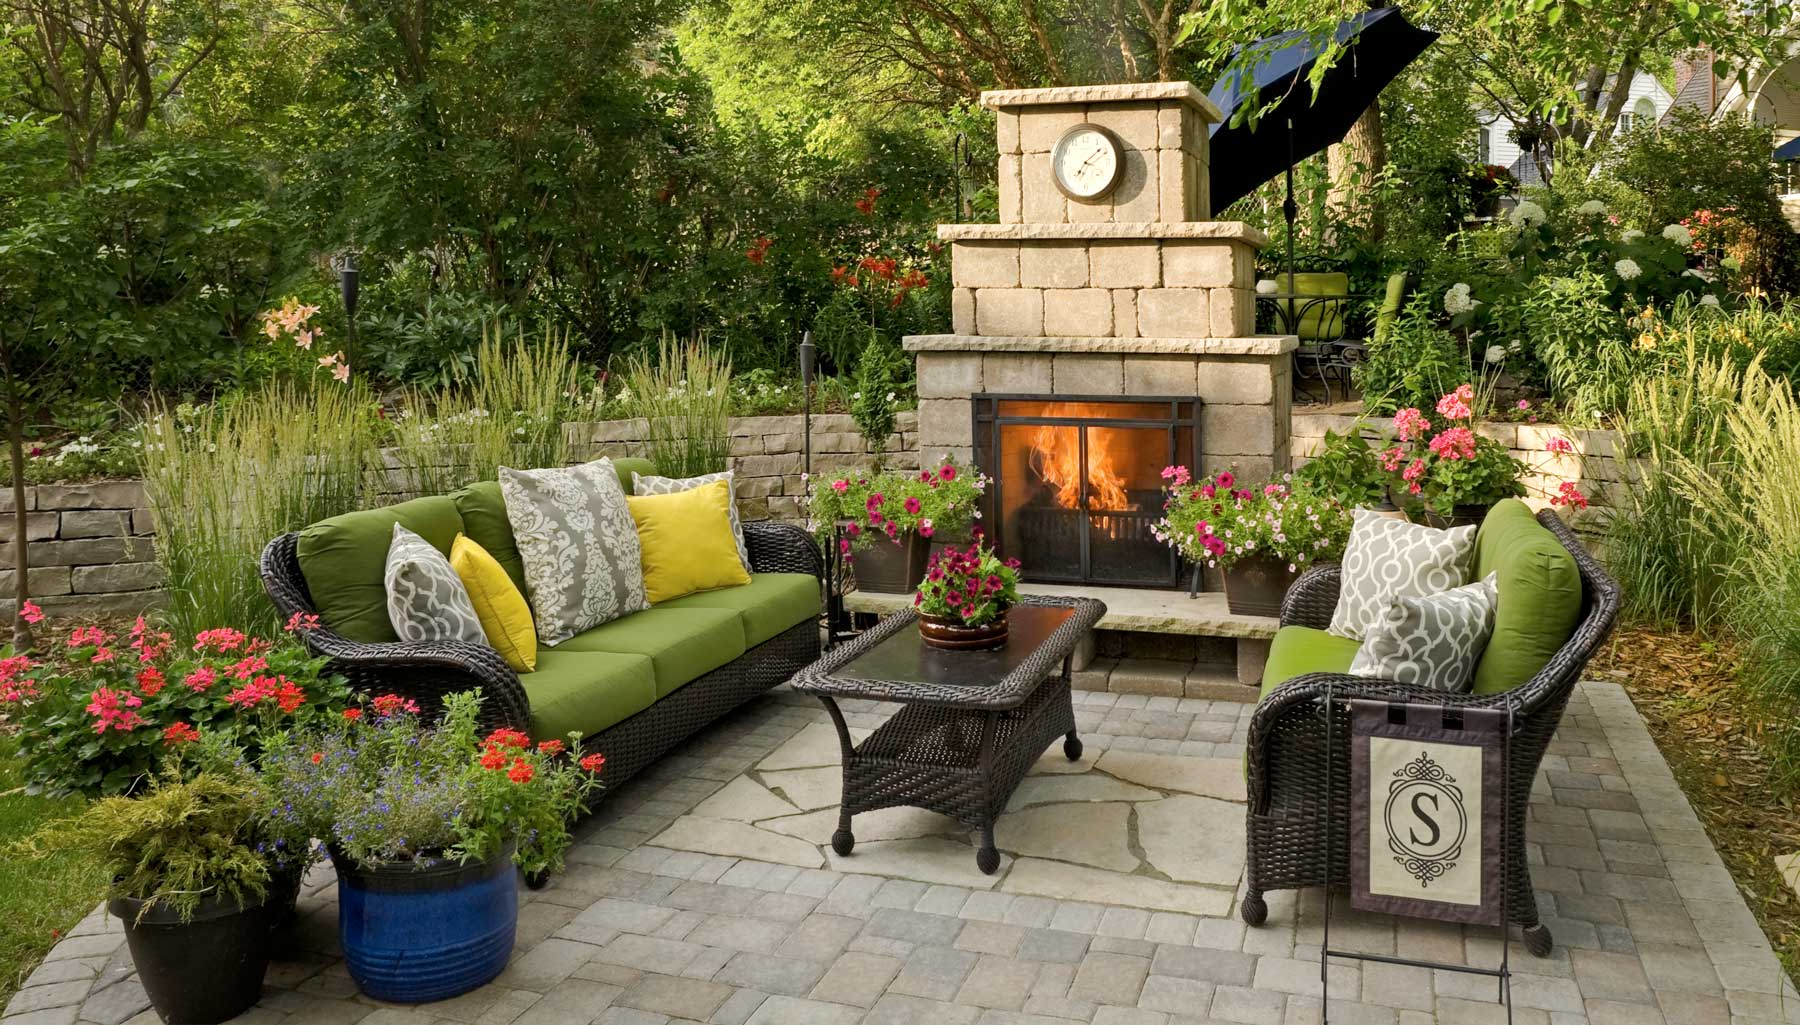 This beautiful and functional outdoor room is topped off with a grand fireplace.